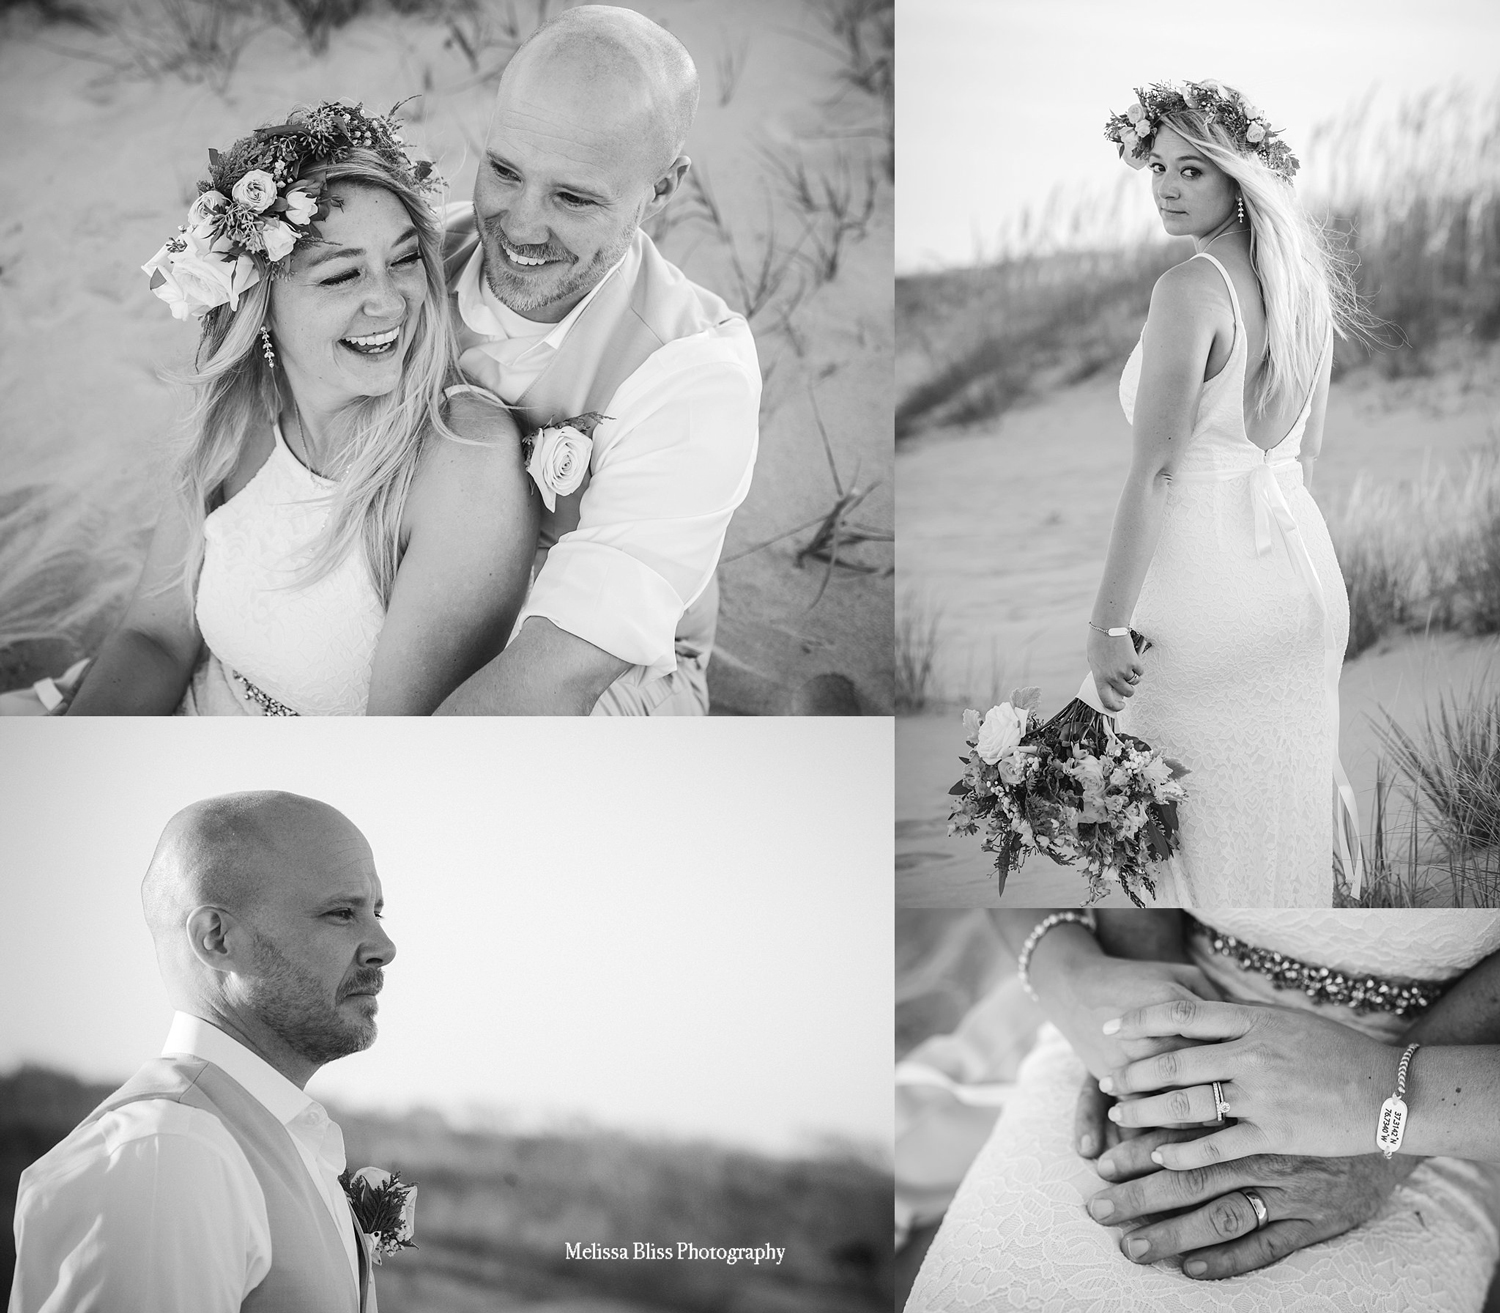 bride-and-groom-portraits-virginia-beach-oceanfront-wedding-by-melissa-bliss-photography-norfolk-va-beach-sandbridge-wedding-photographers.jpg